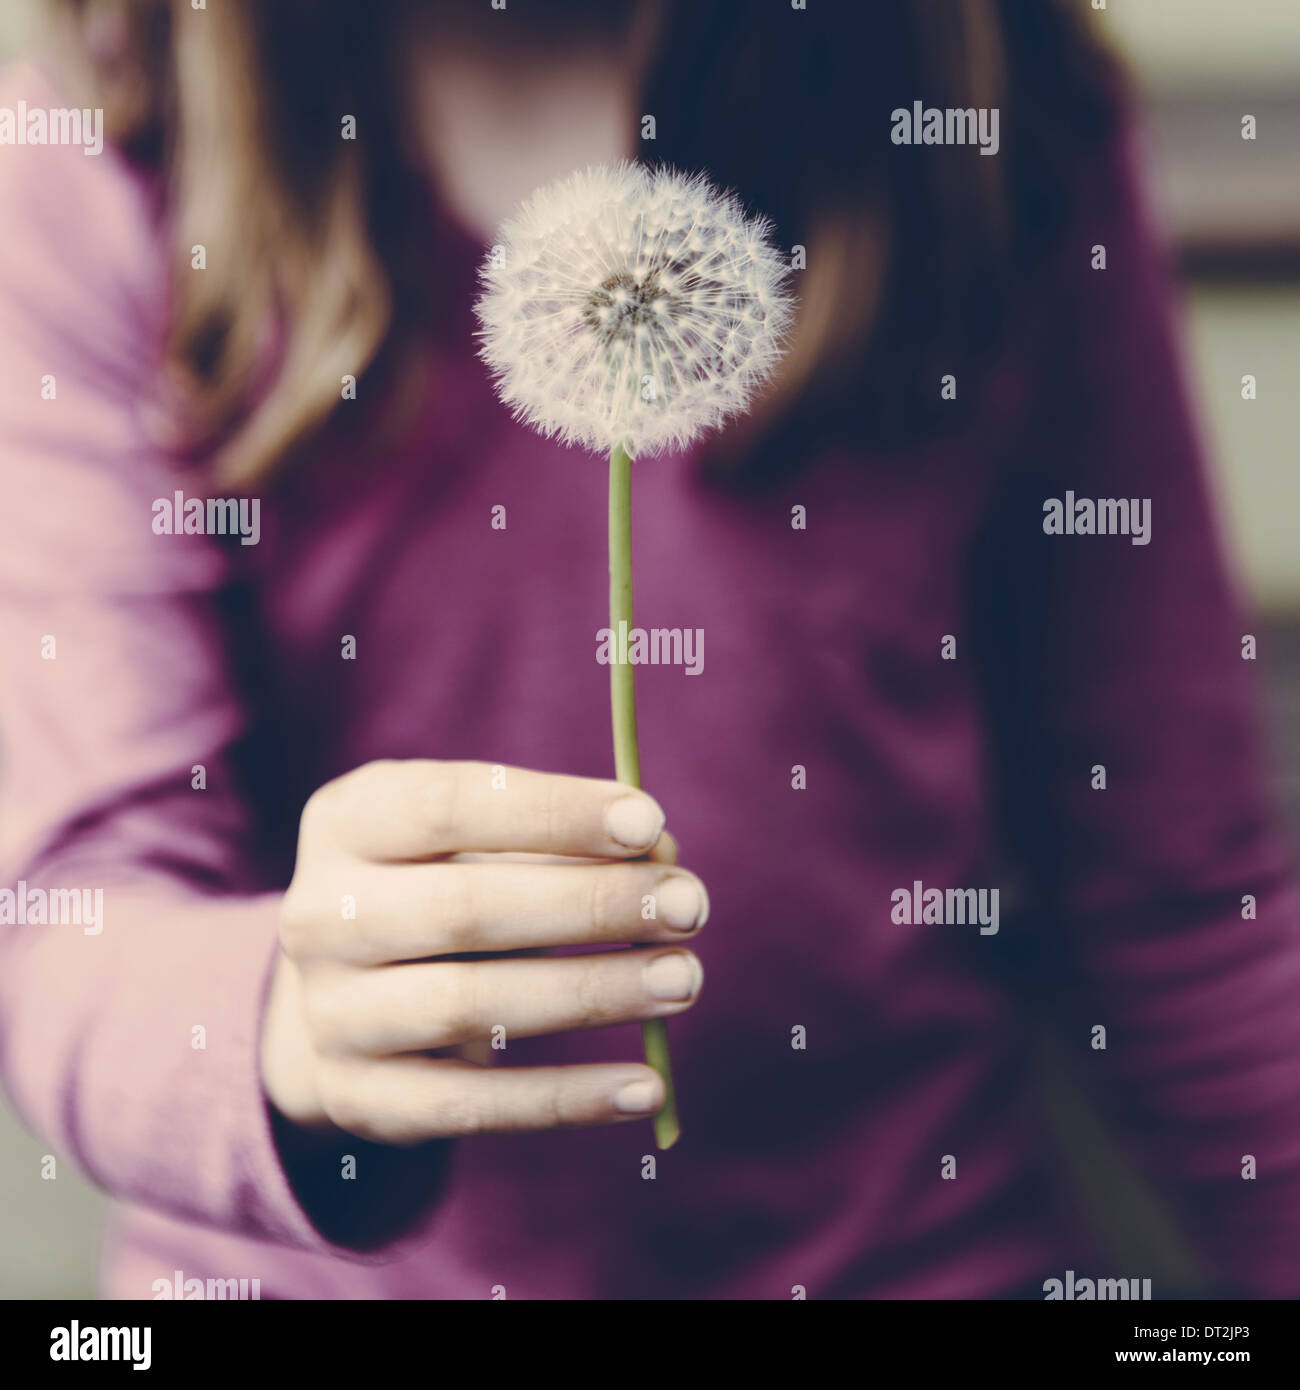 A ten year old girl holding a dandelion clock seedhead on a long stem - Stock Image